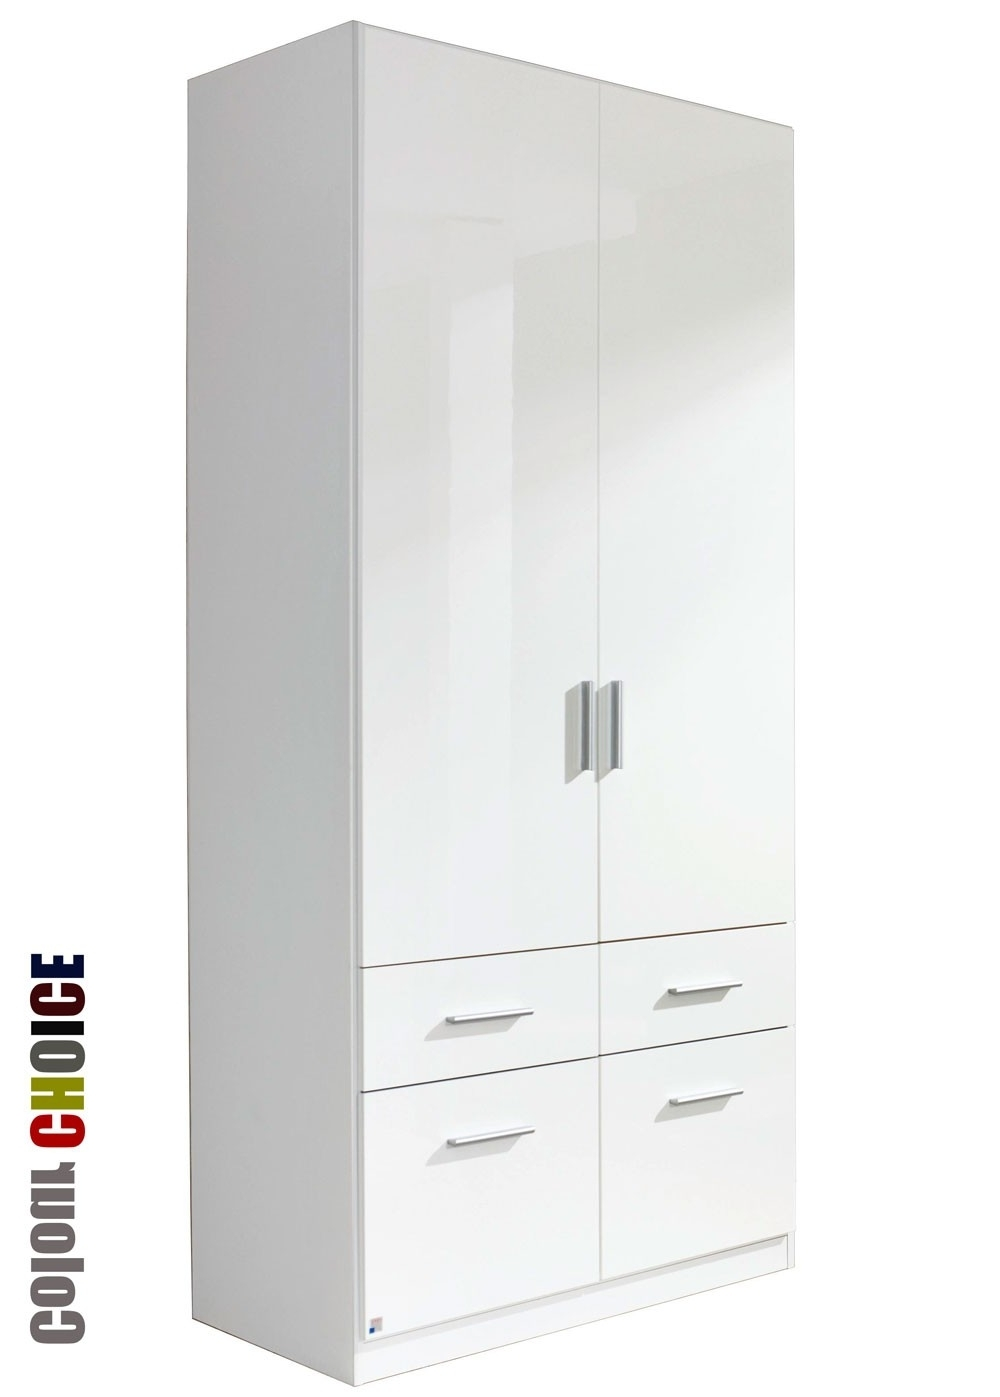 Rauch High Gloss Cello 2 Door 4 Drawer Wardrobe Intended For 2018 White 2 Door Wardrobes With Drawers (View 8 of 15)